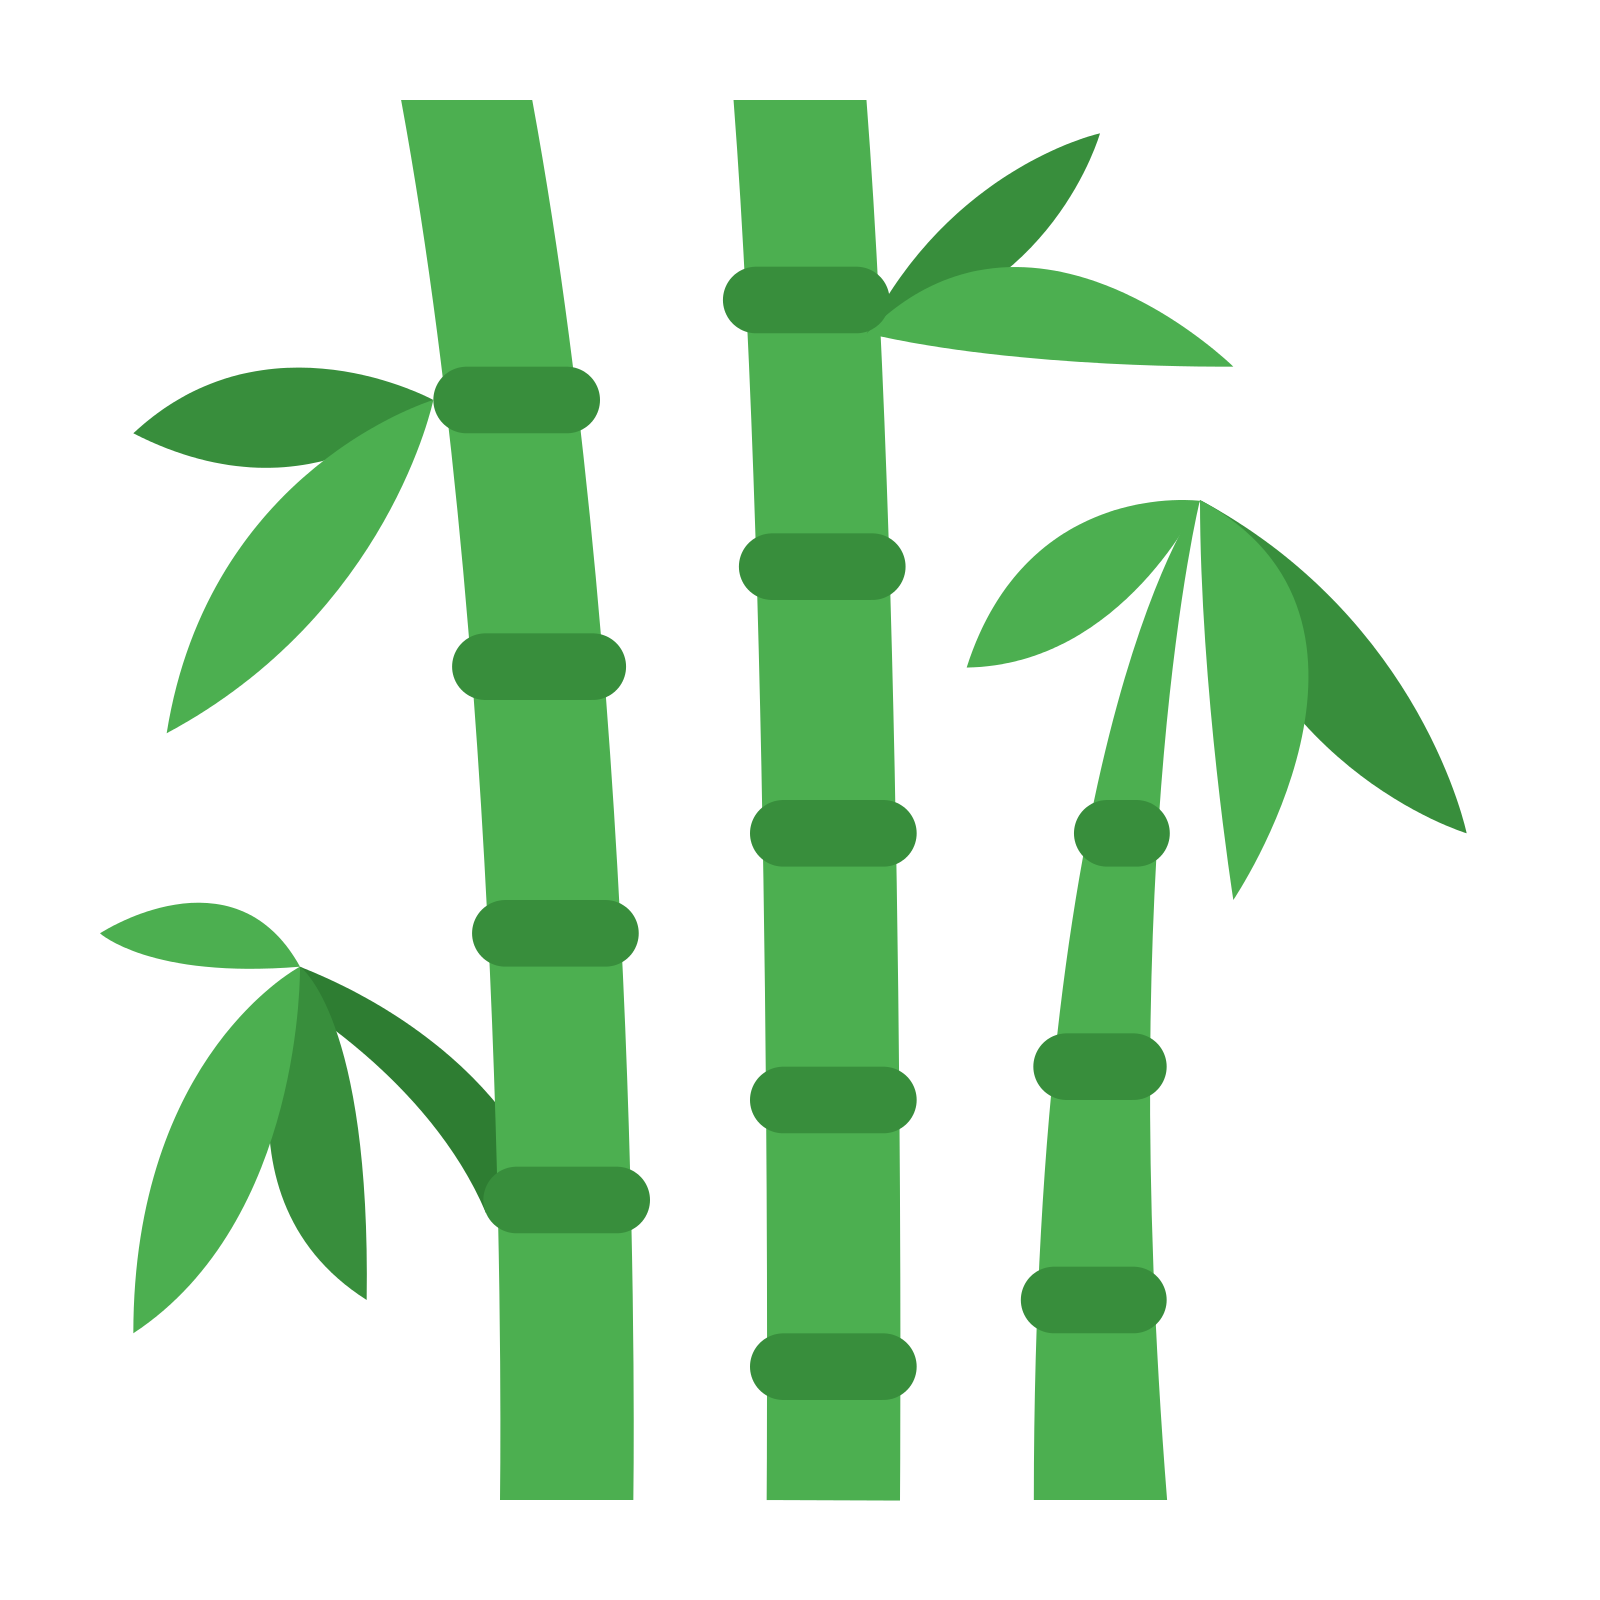 Pan clipart leaf. Bamboo png images transparent